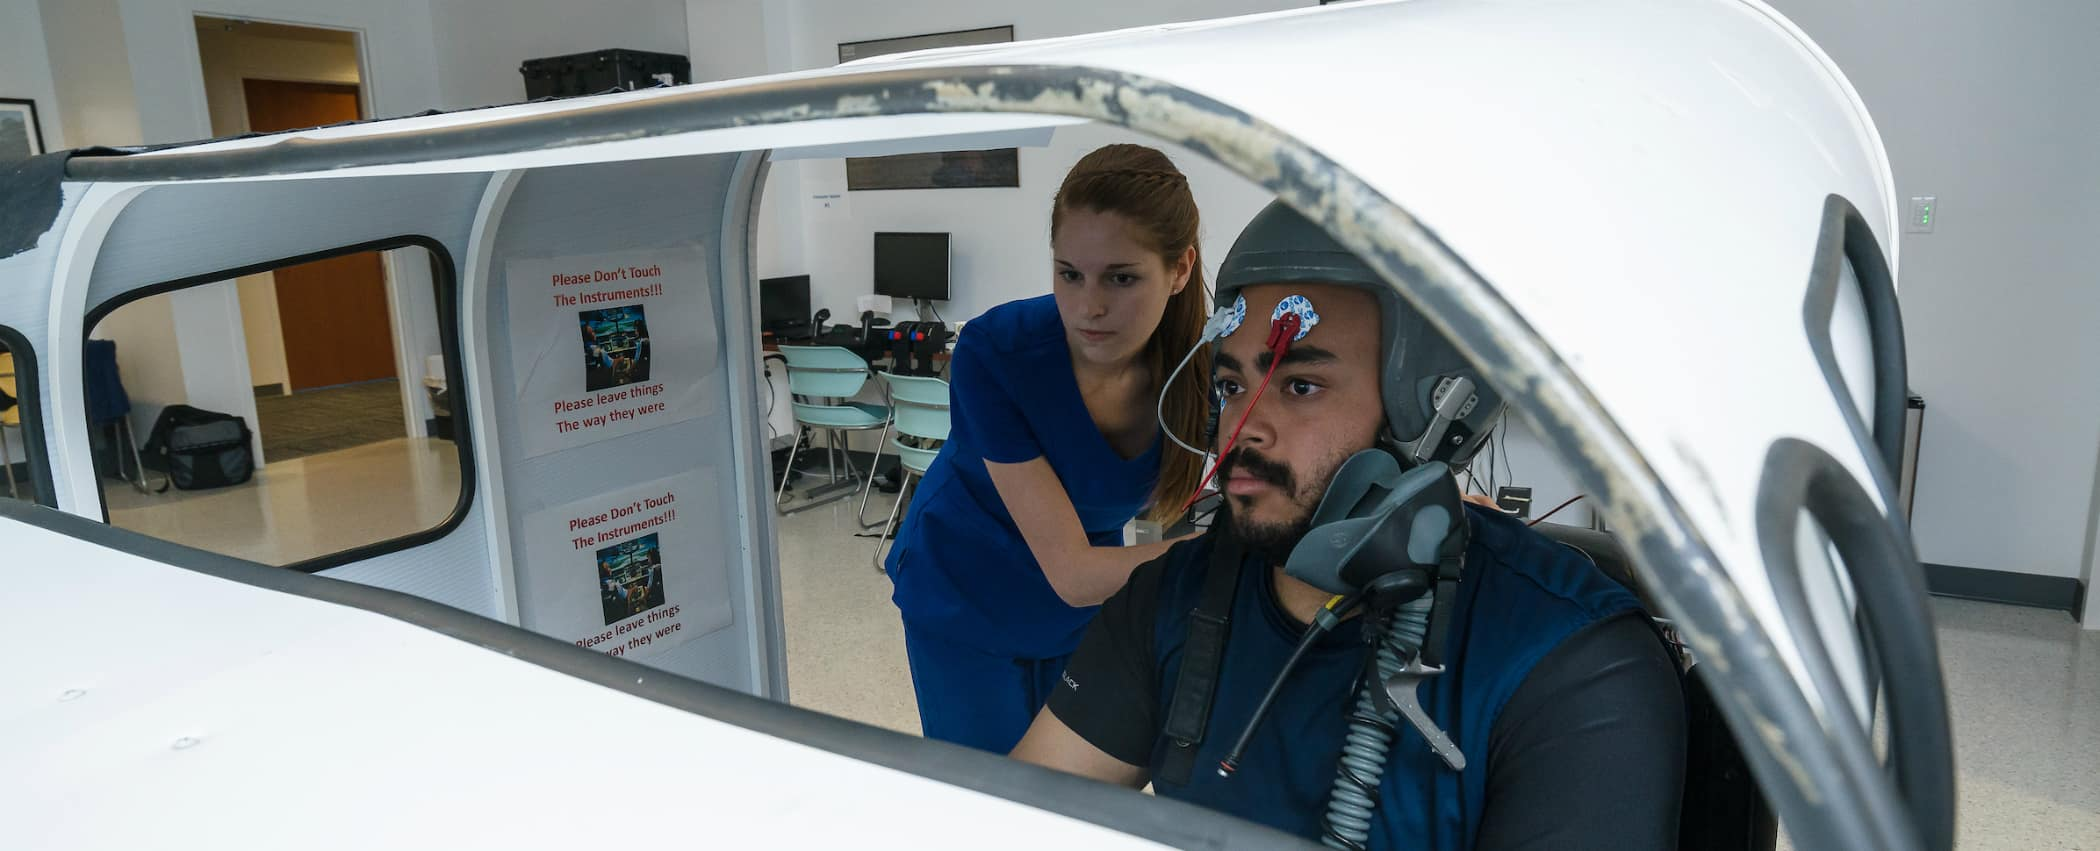 Dr. Bert Boquet works with a student and lab technician to measure pilot performace in a simulator.